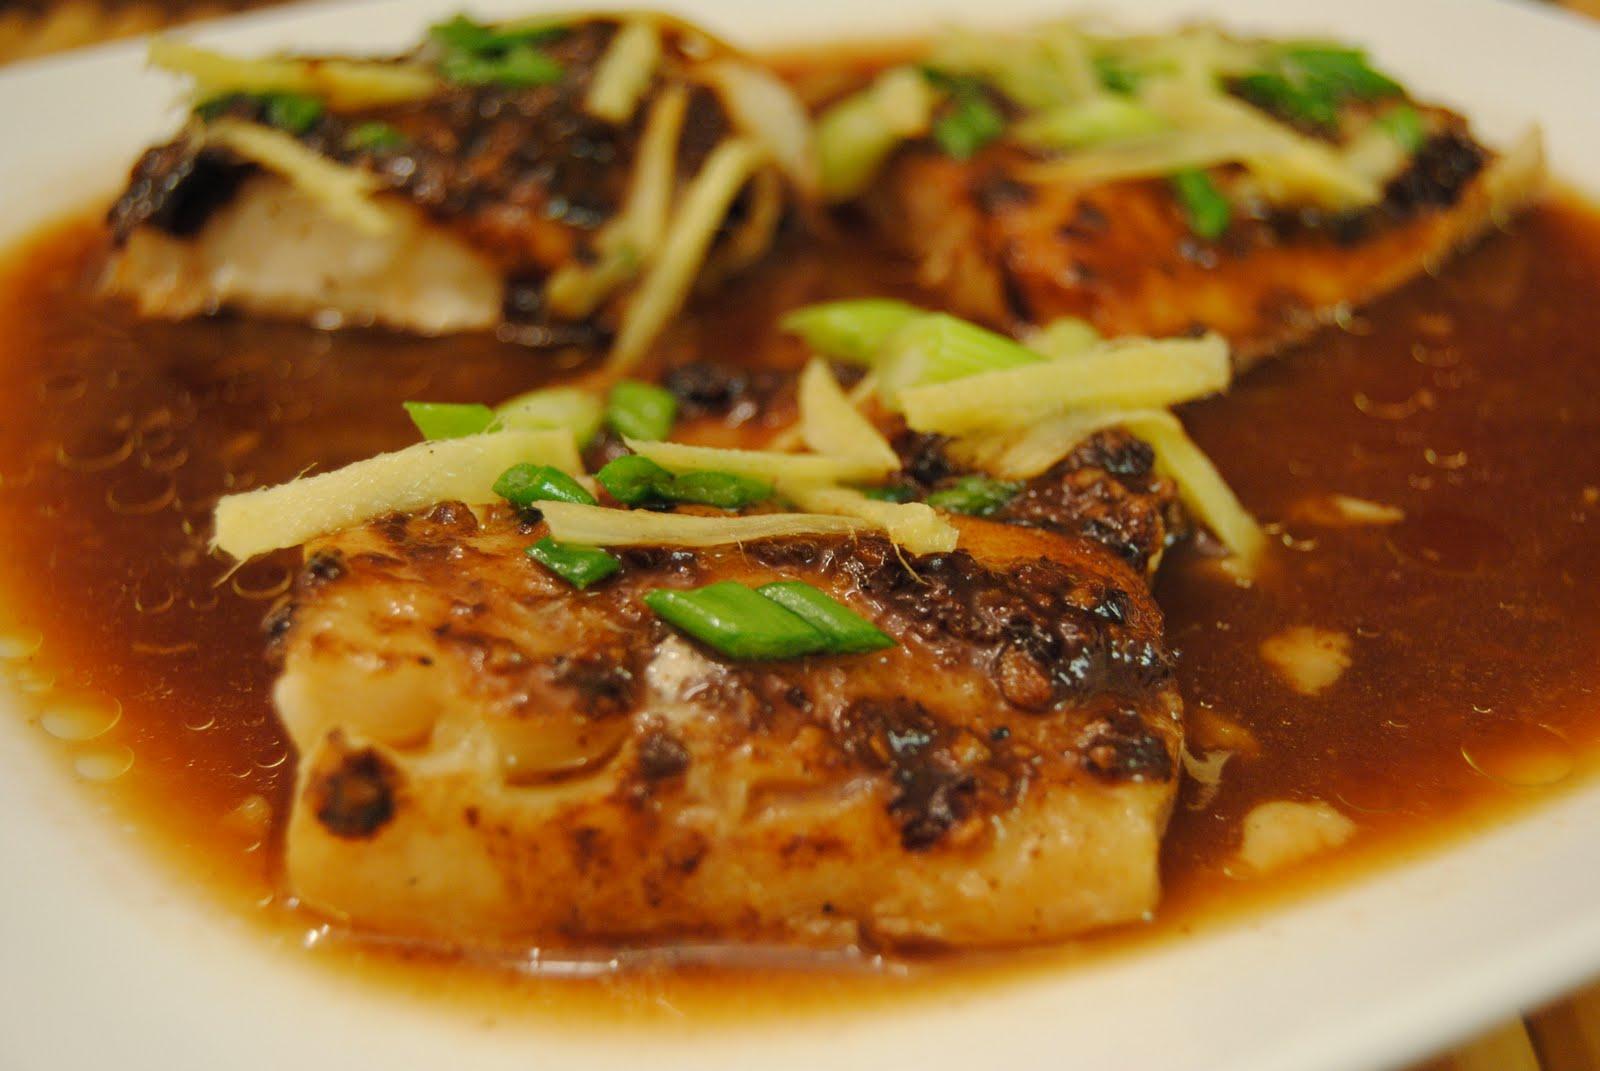 Malikala's Ono Kine Grinds: Steamed Fish with Black Bean Sauce